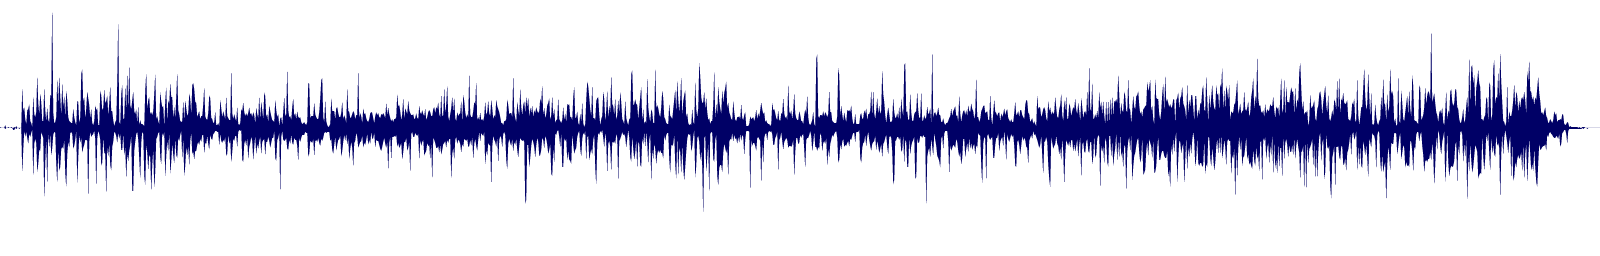 waveform of track #89540